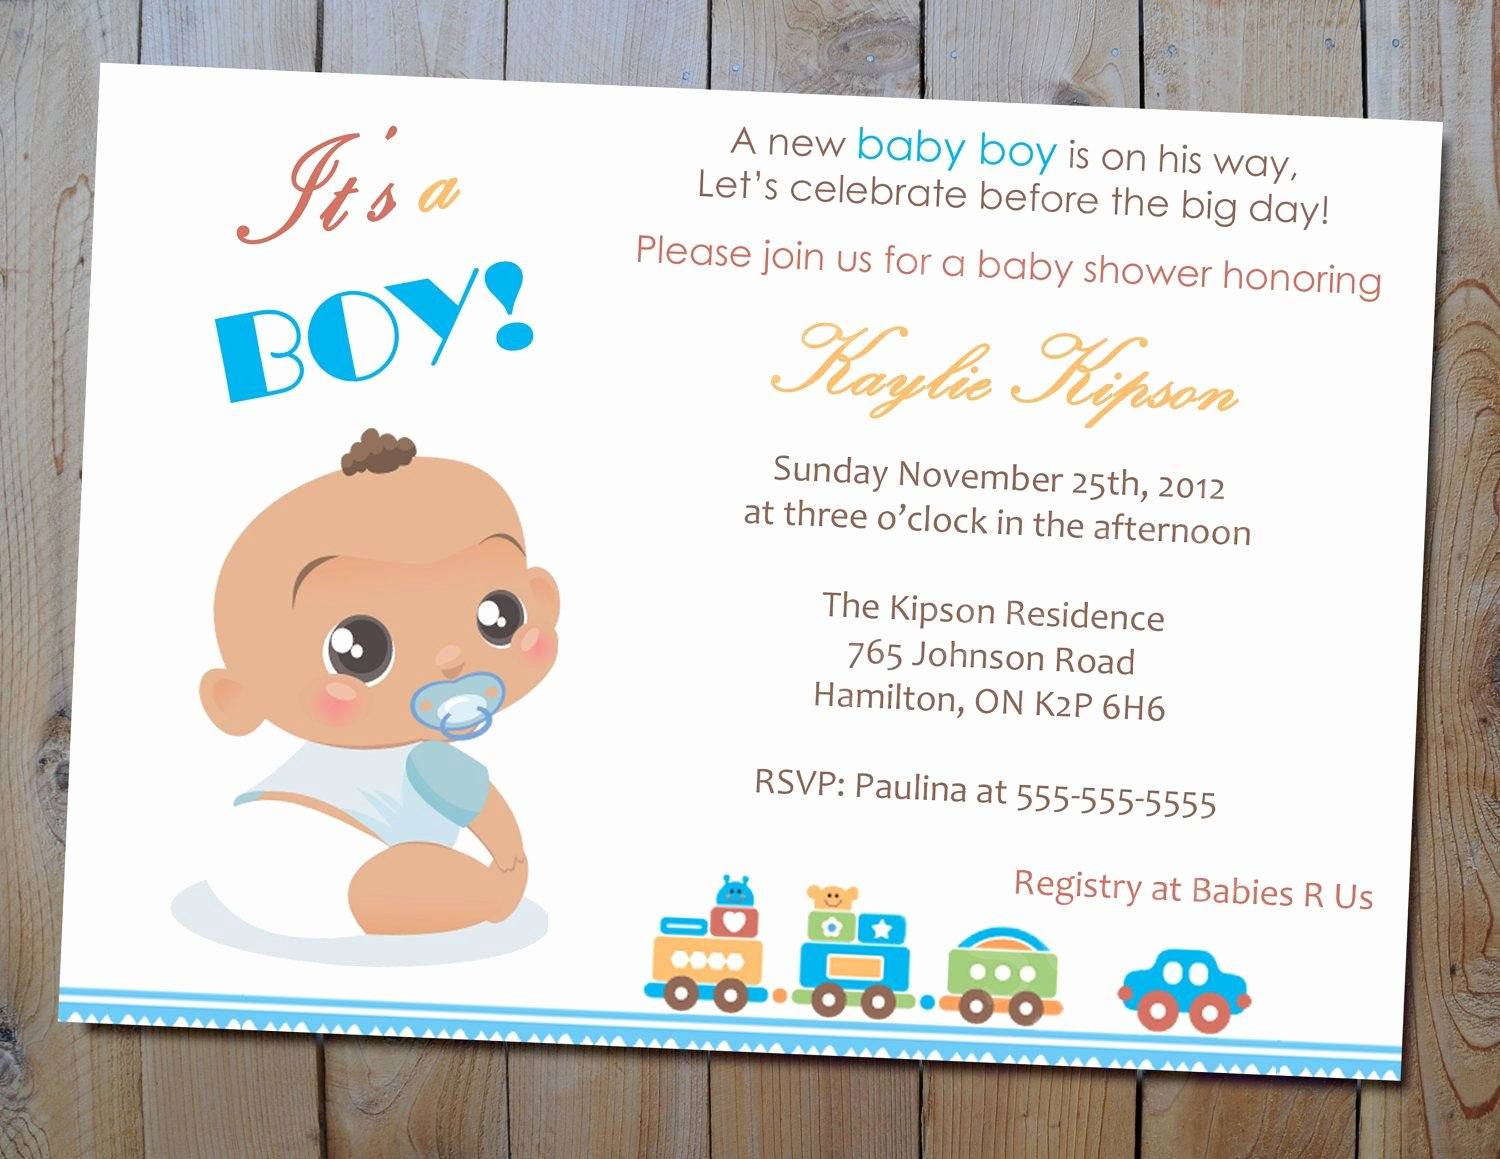 Baby Shower Card to Print Luxury Baby Boy Shower Invitation